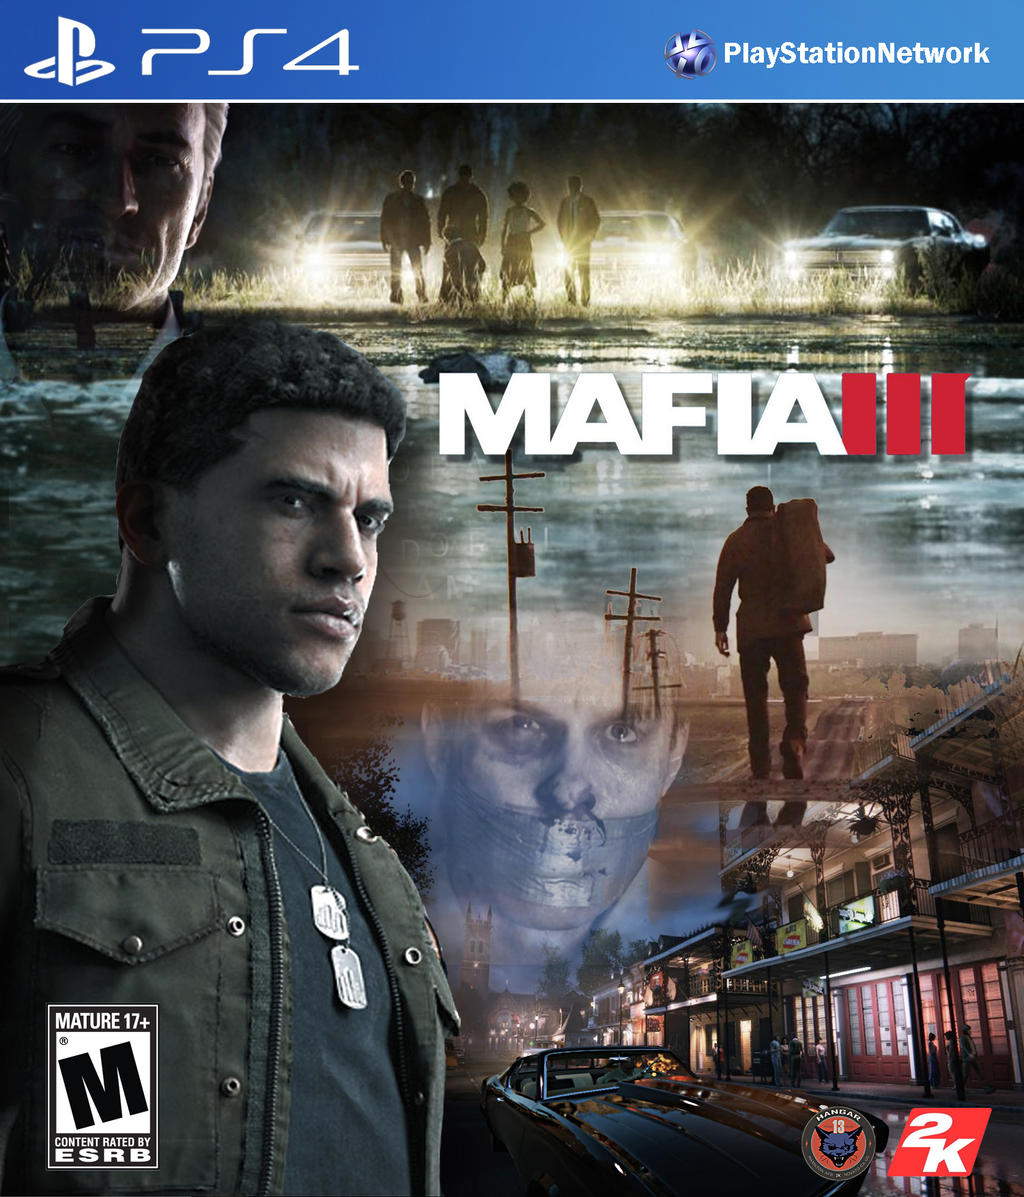 Mafia Games For Ps4 : Mafia iii ps video game cover by domestrialization on